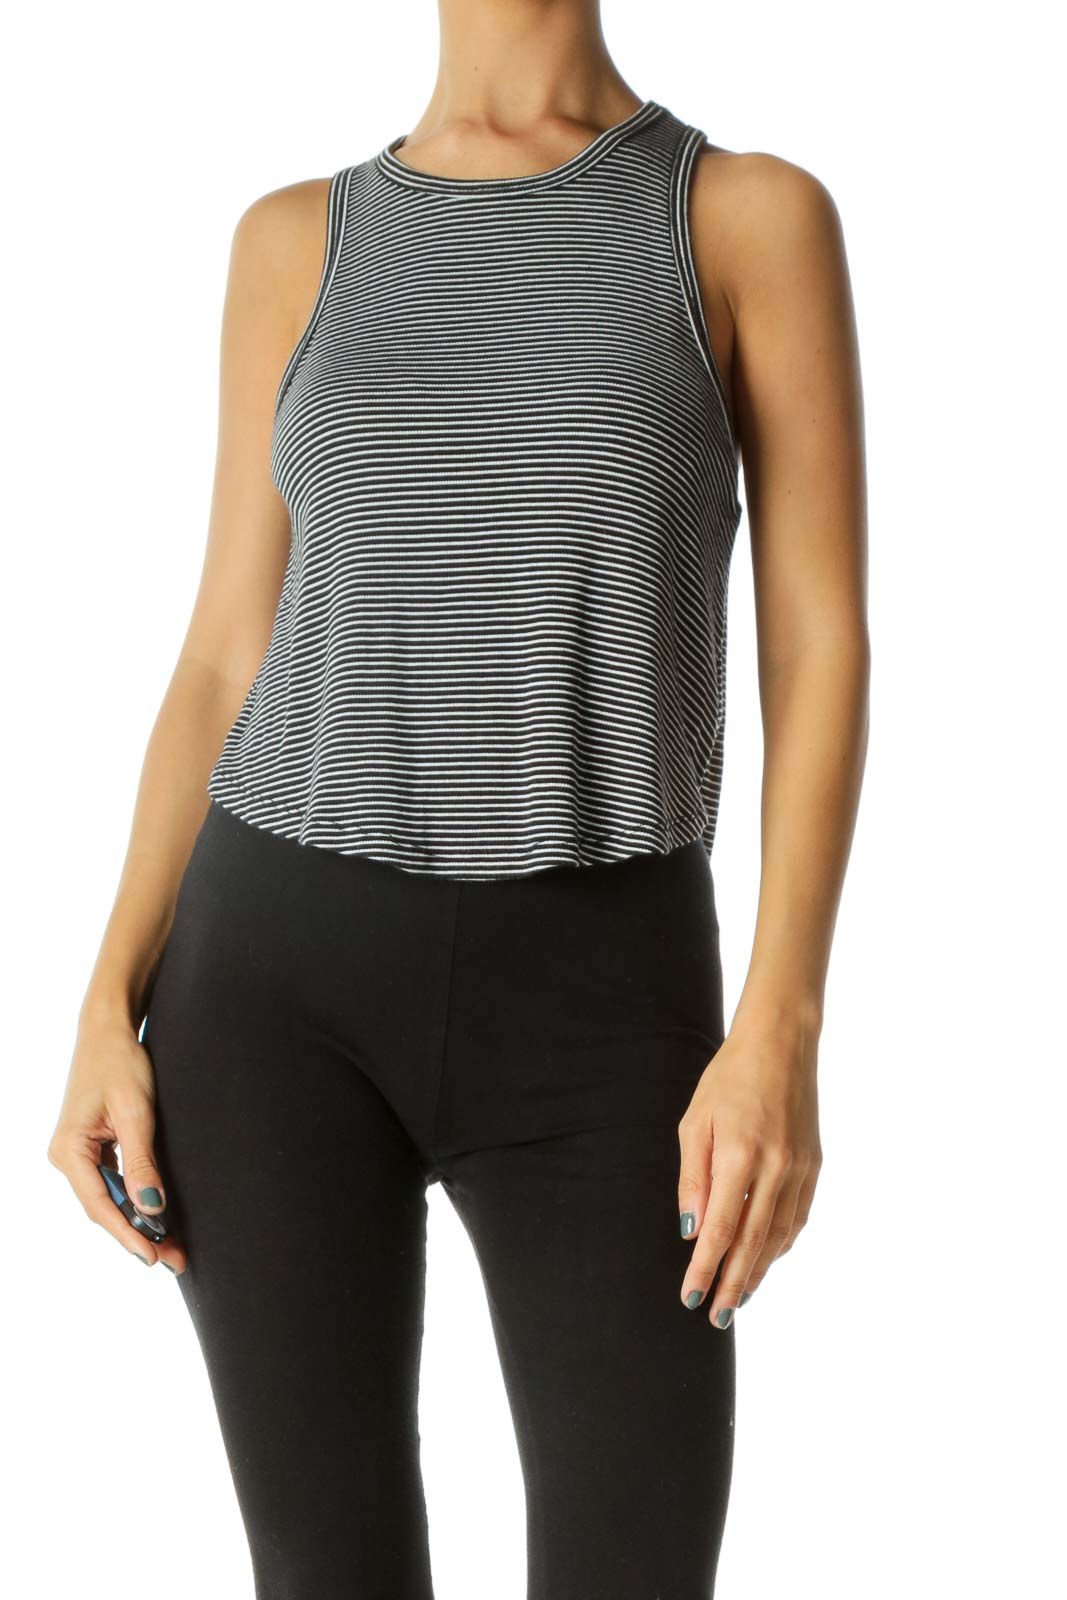 Black & White Striped Racer-Back Tank-Top Front